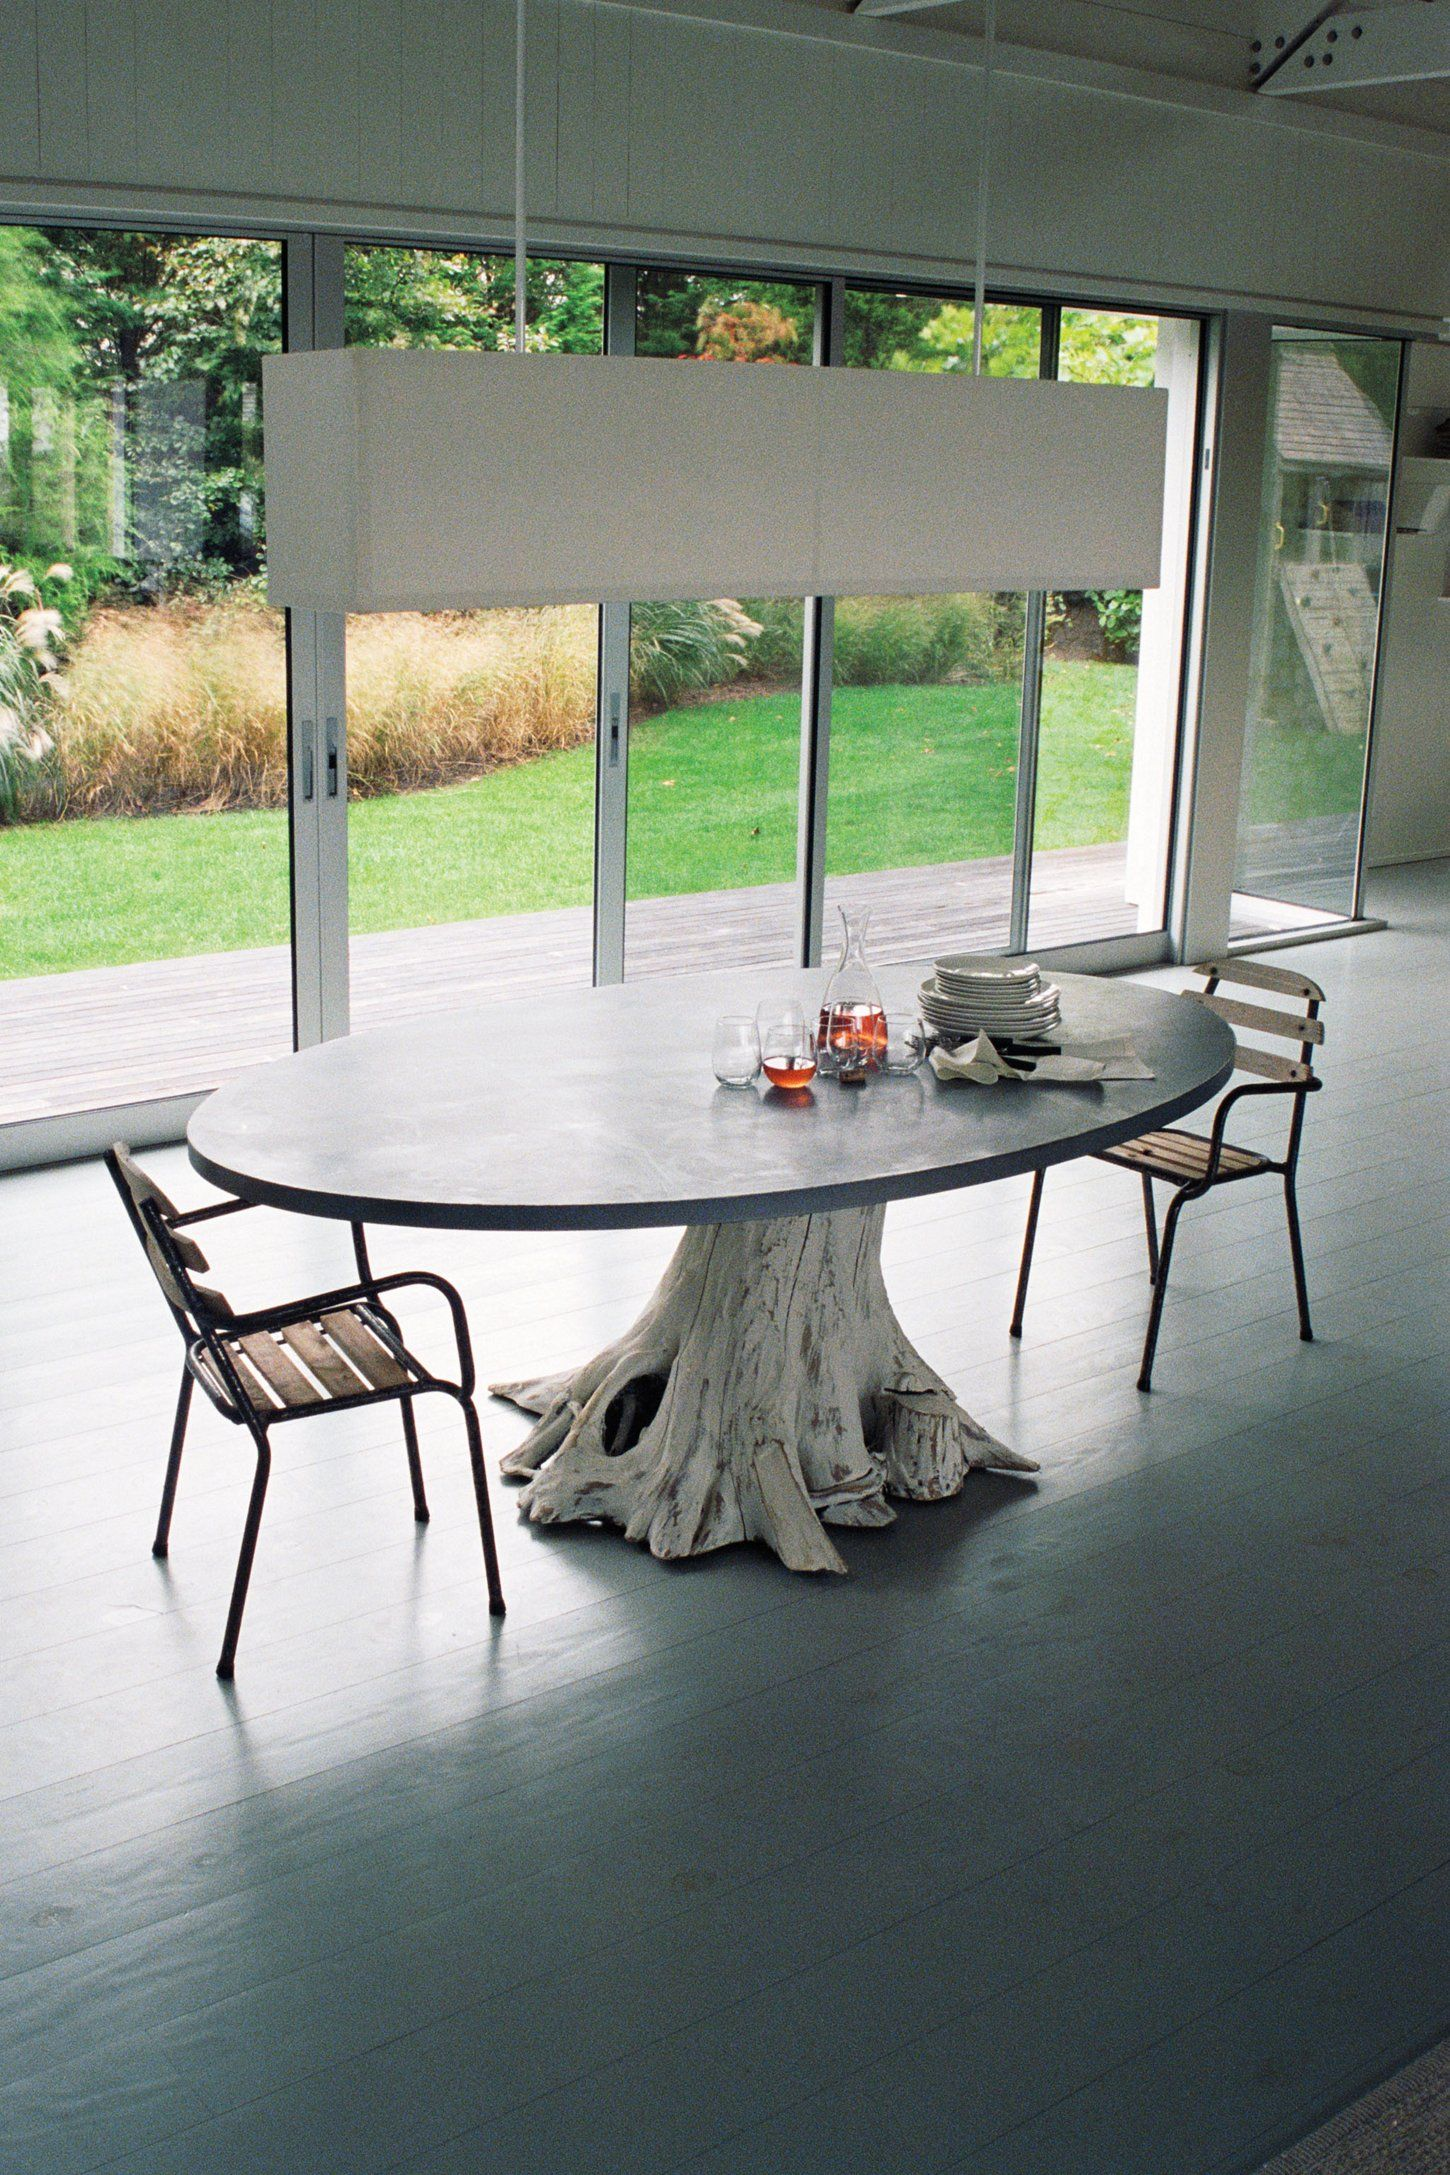 Mineral might dining table pezzi d 39 arredo pinterest for Tavolo tronco d albero